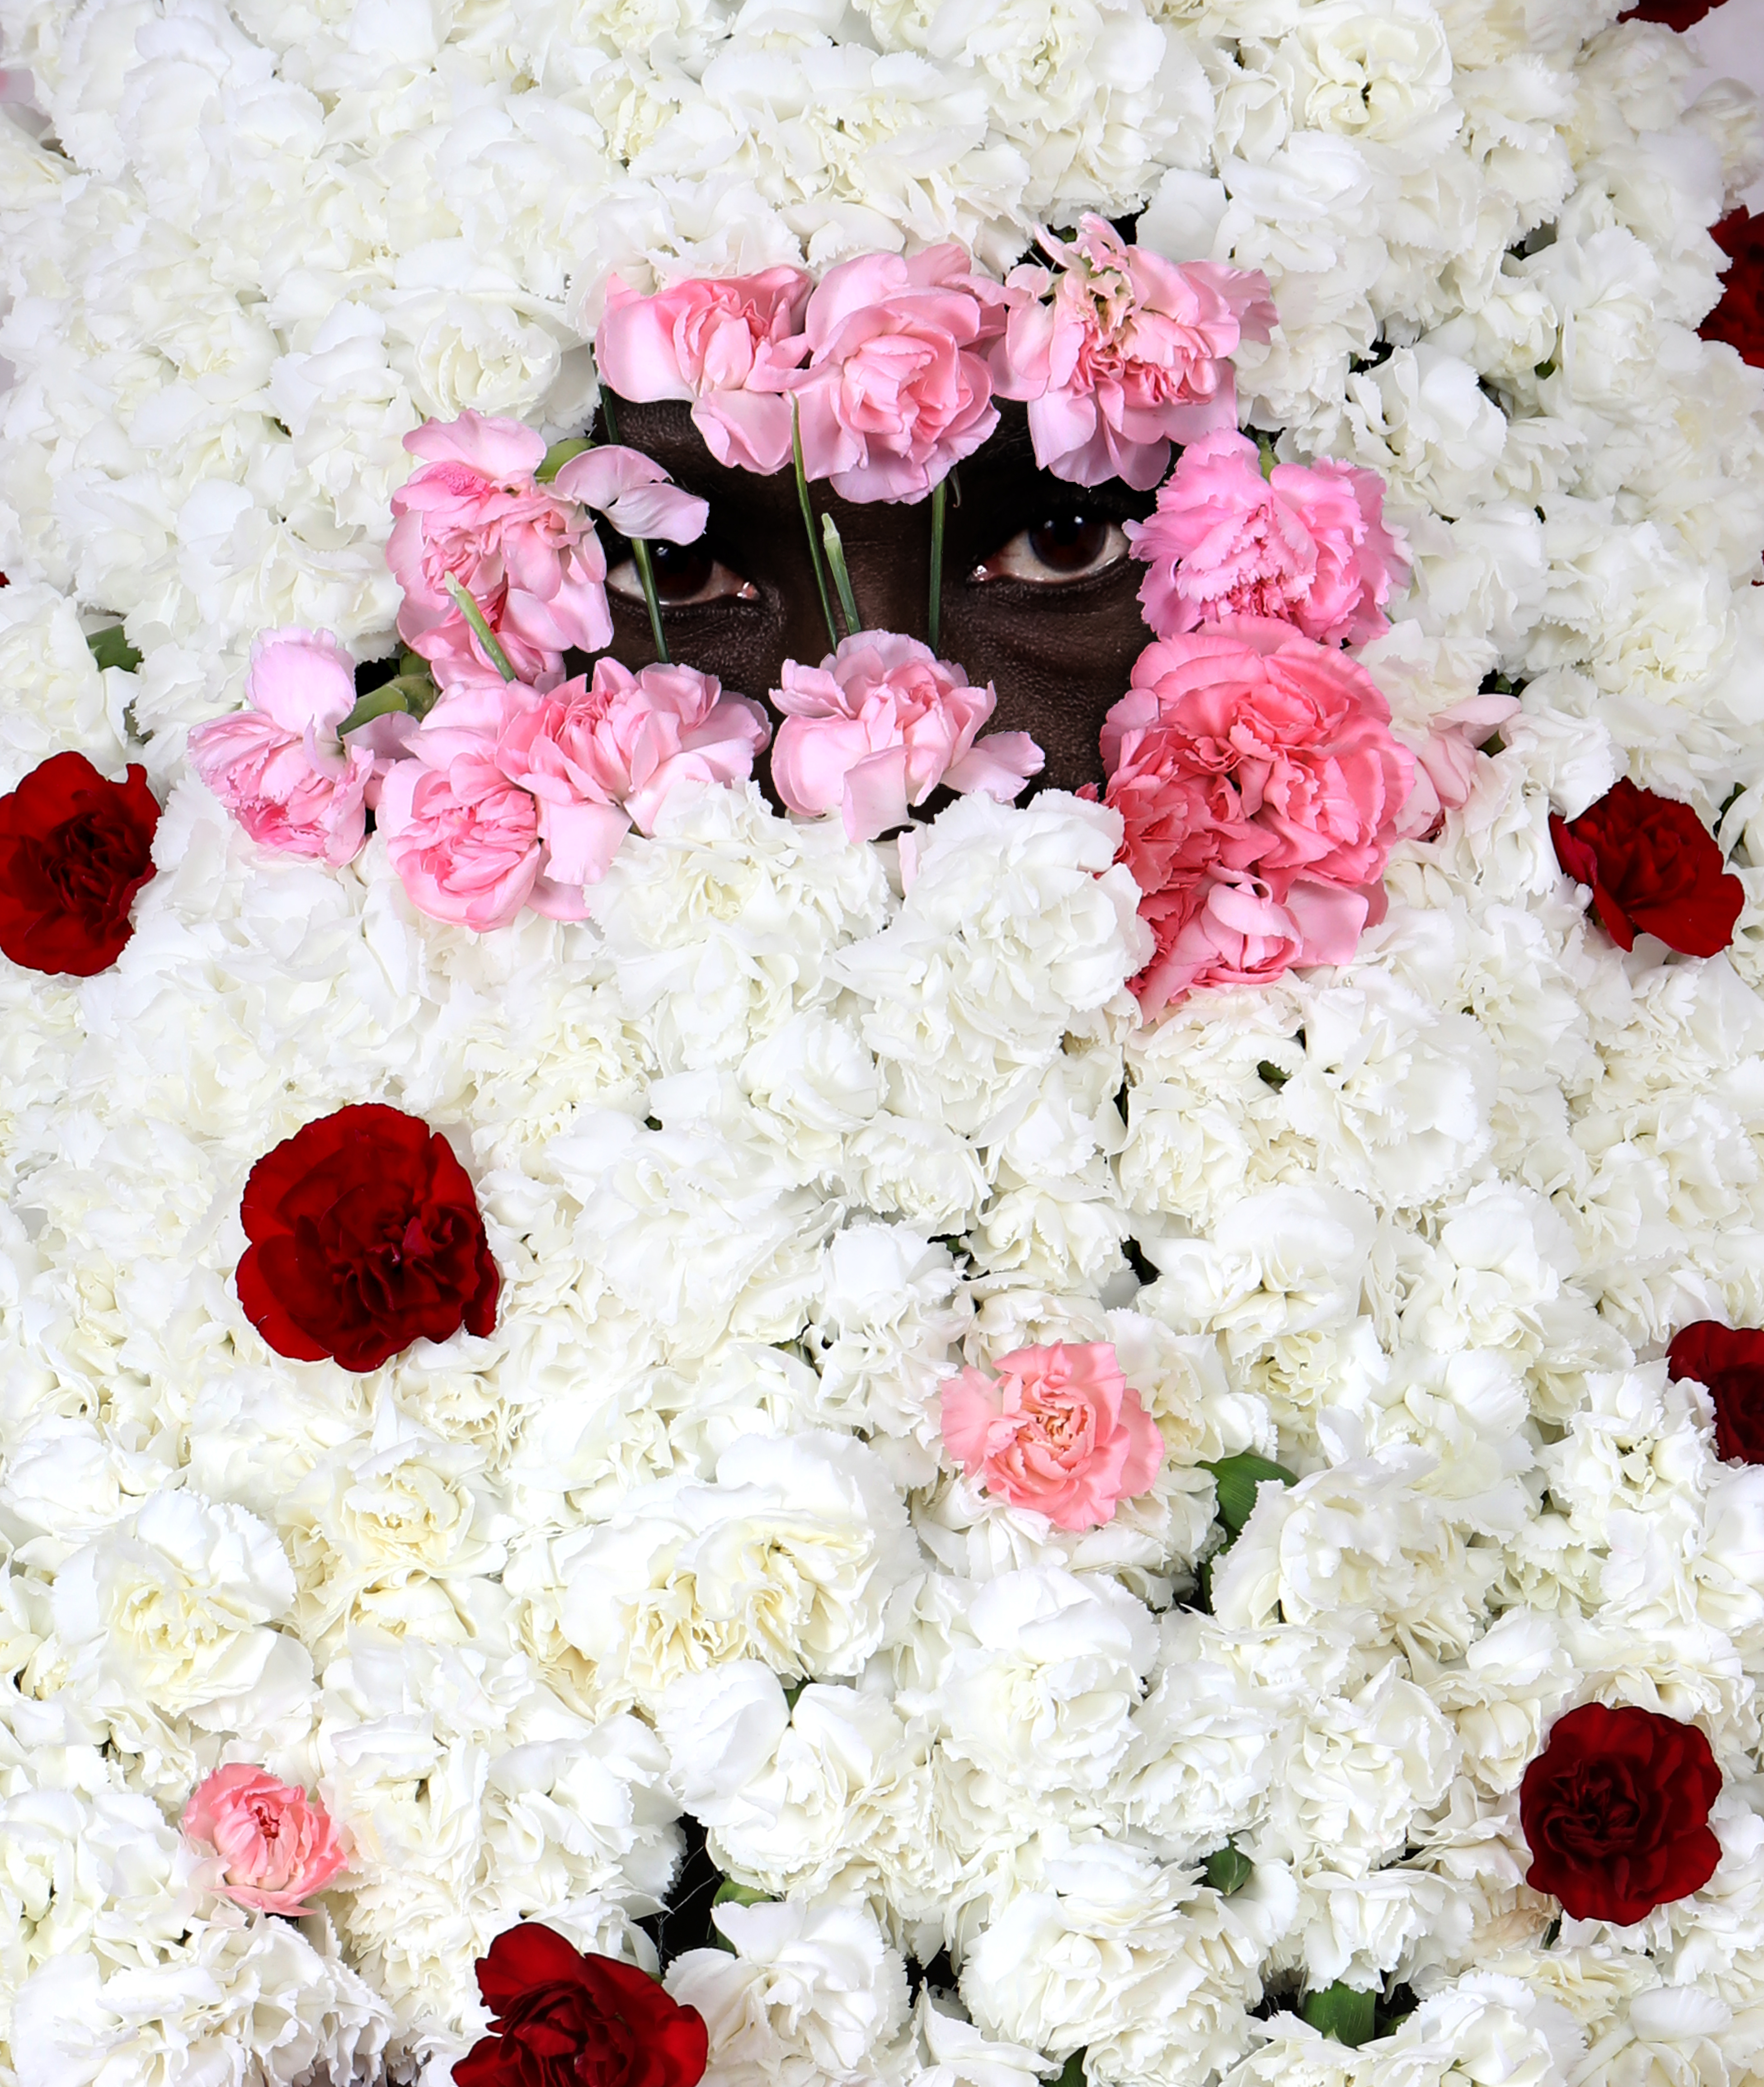 White,pink and red flowers